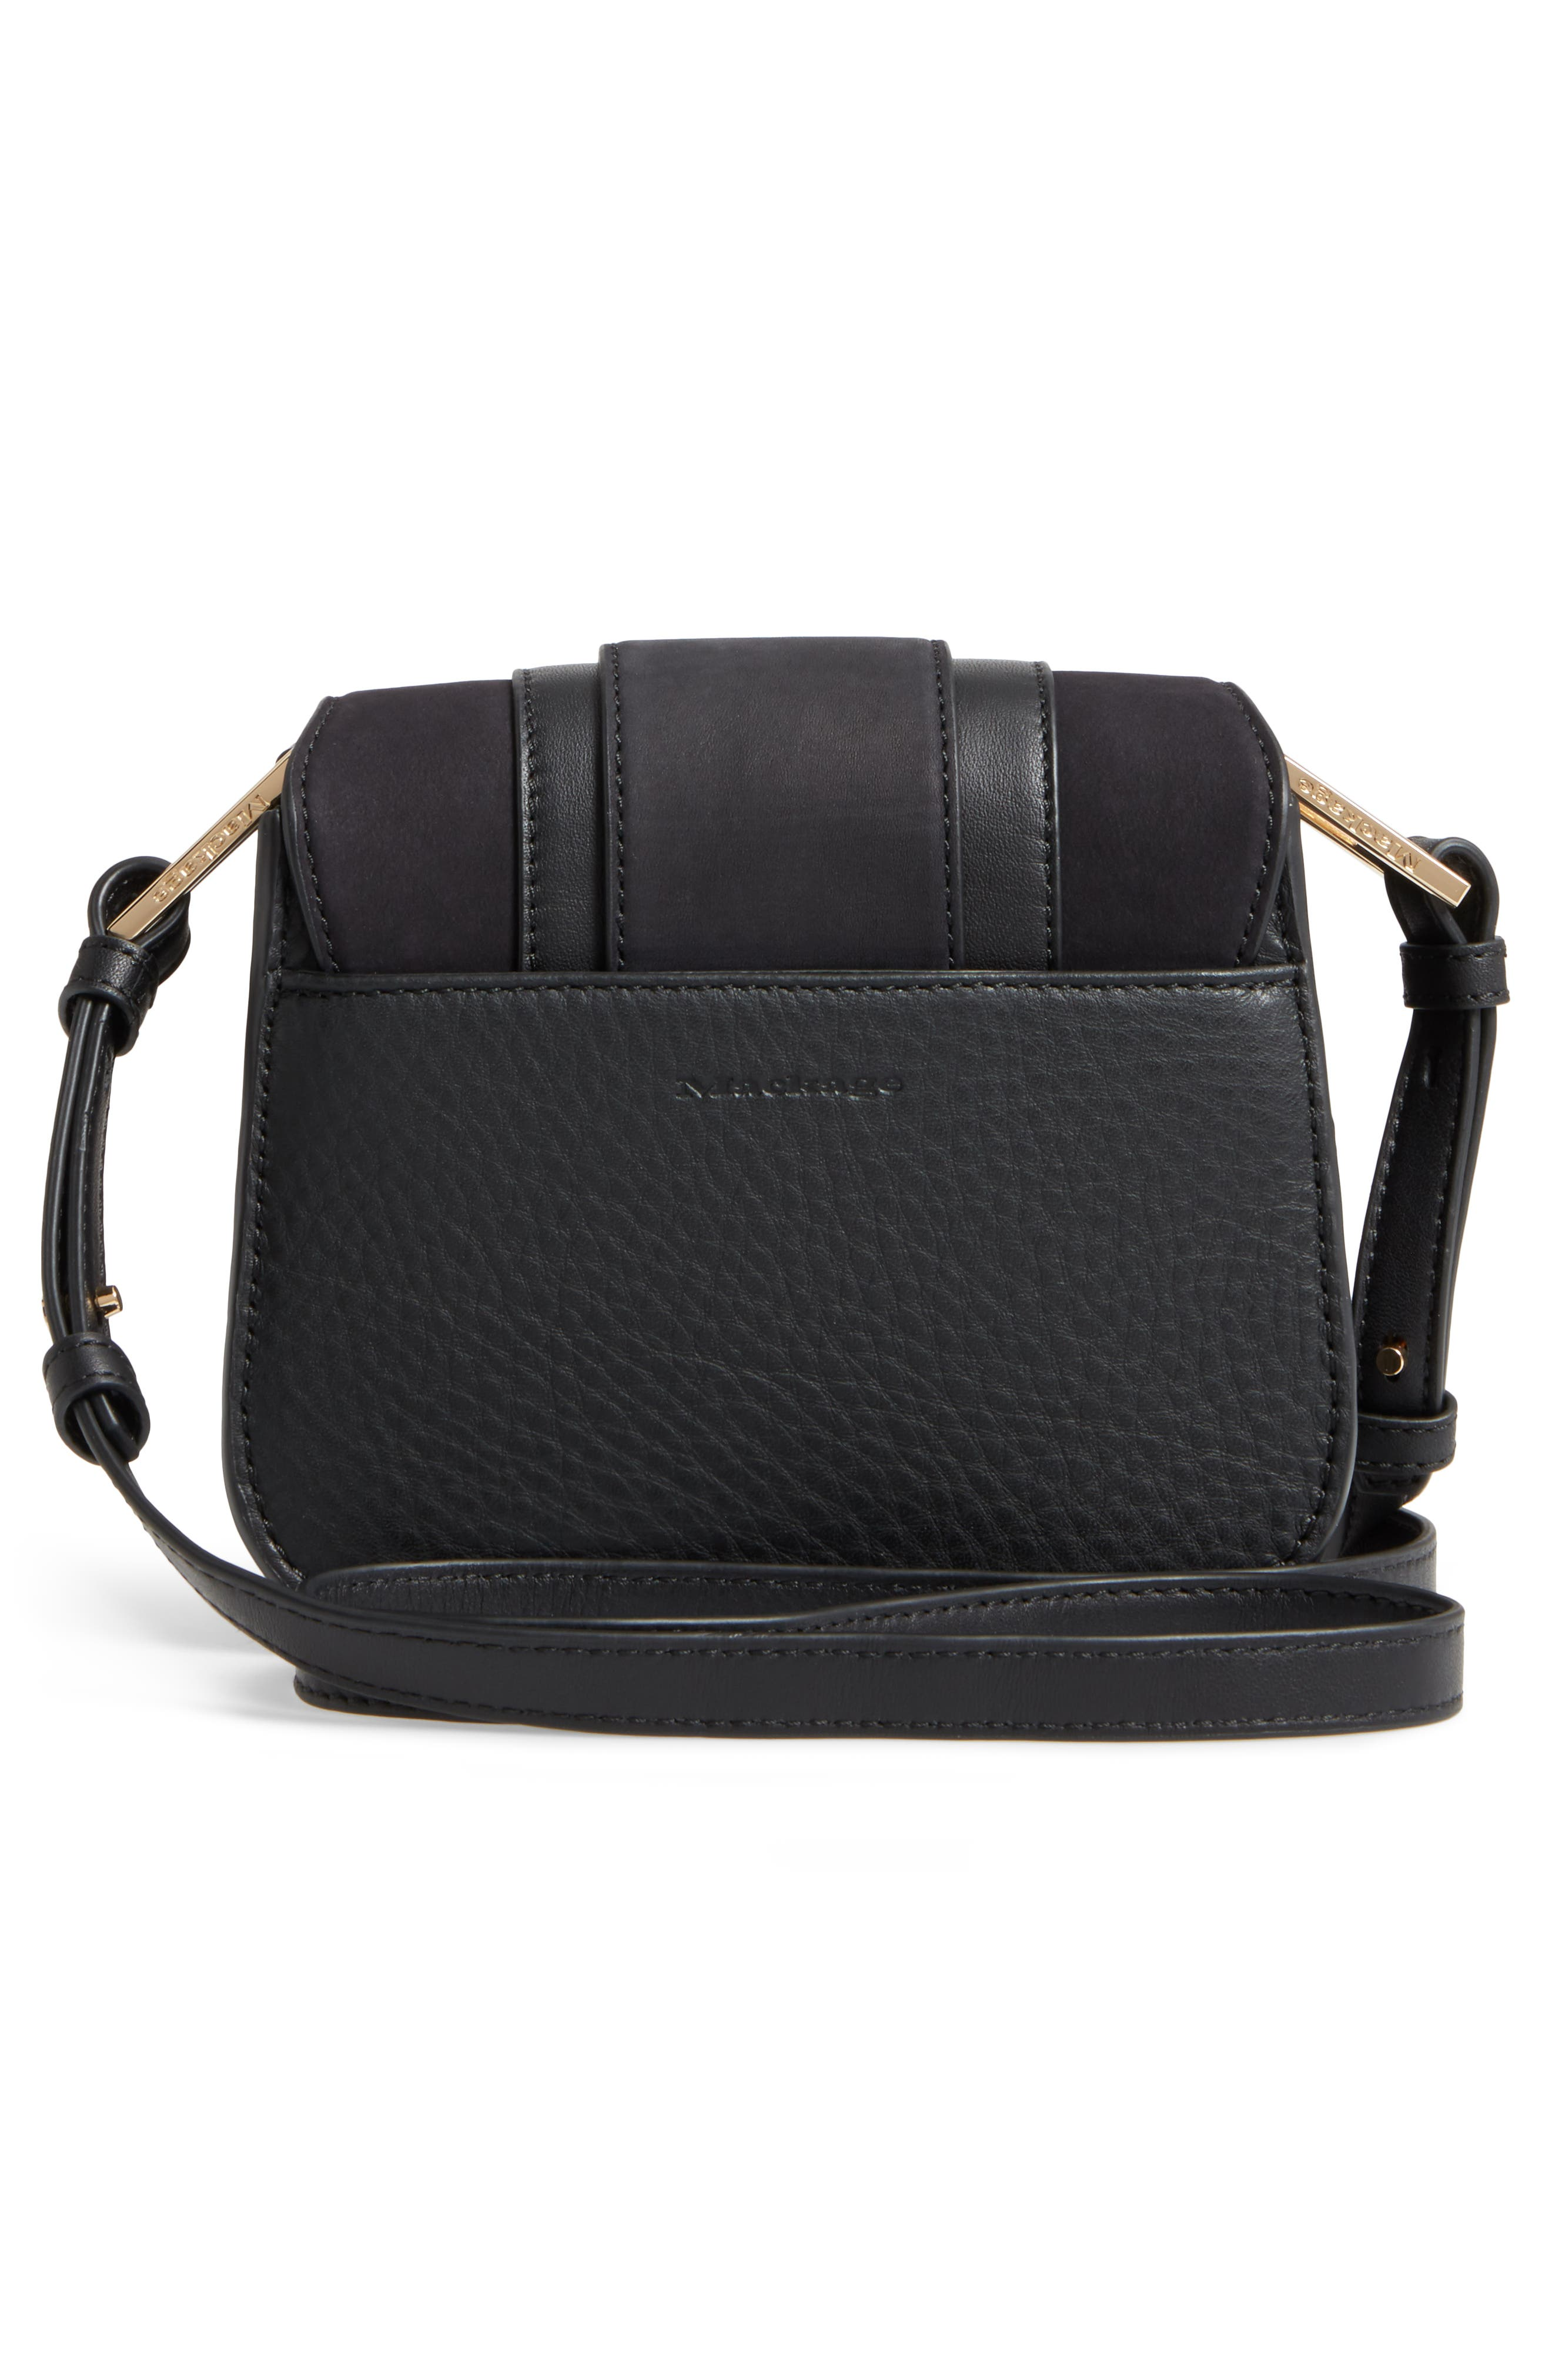 Mini Polly Leather Crossbody Bag,                             Alternate thumbnail 3, color,                             001